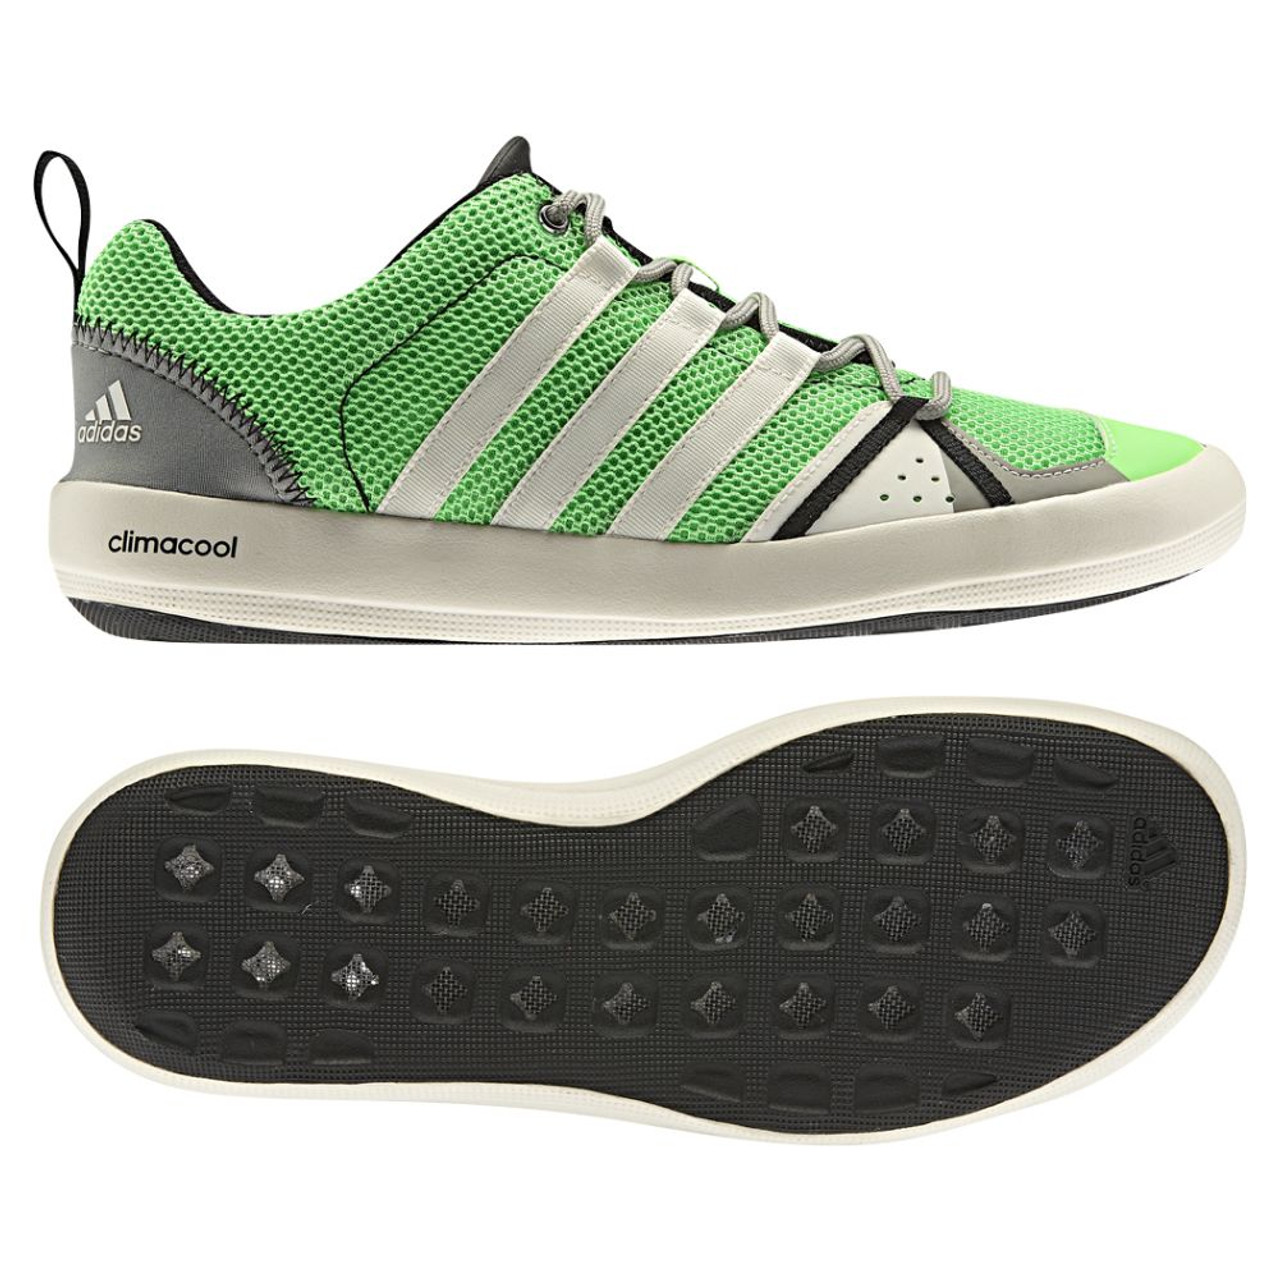 premium selection a3aaa 9e7fa Adidas Climacool Boat Lace Green/White Mens Outdoor Shoes